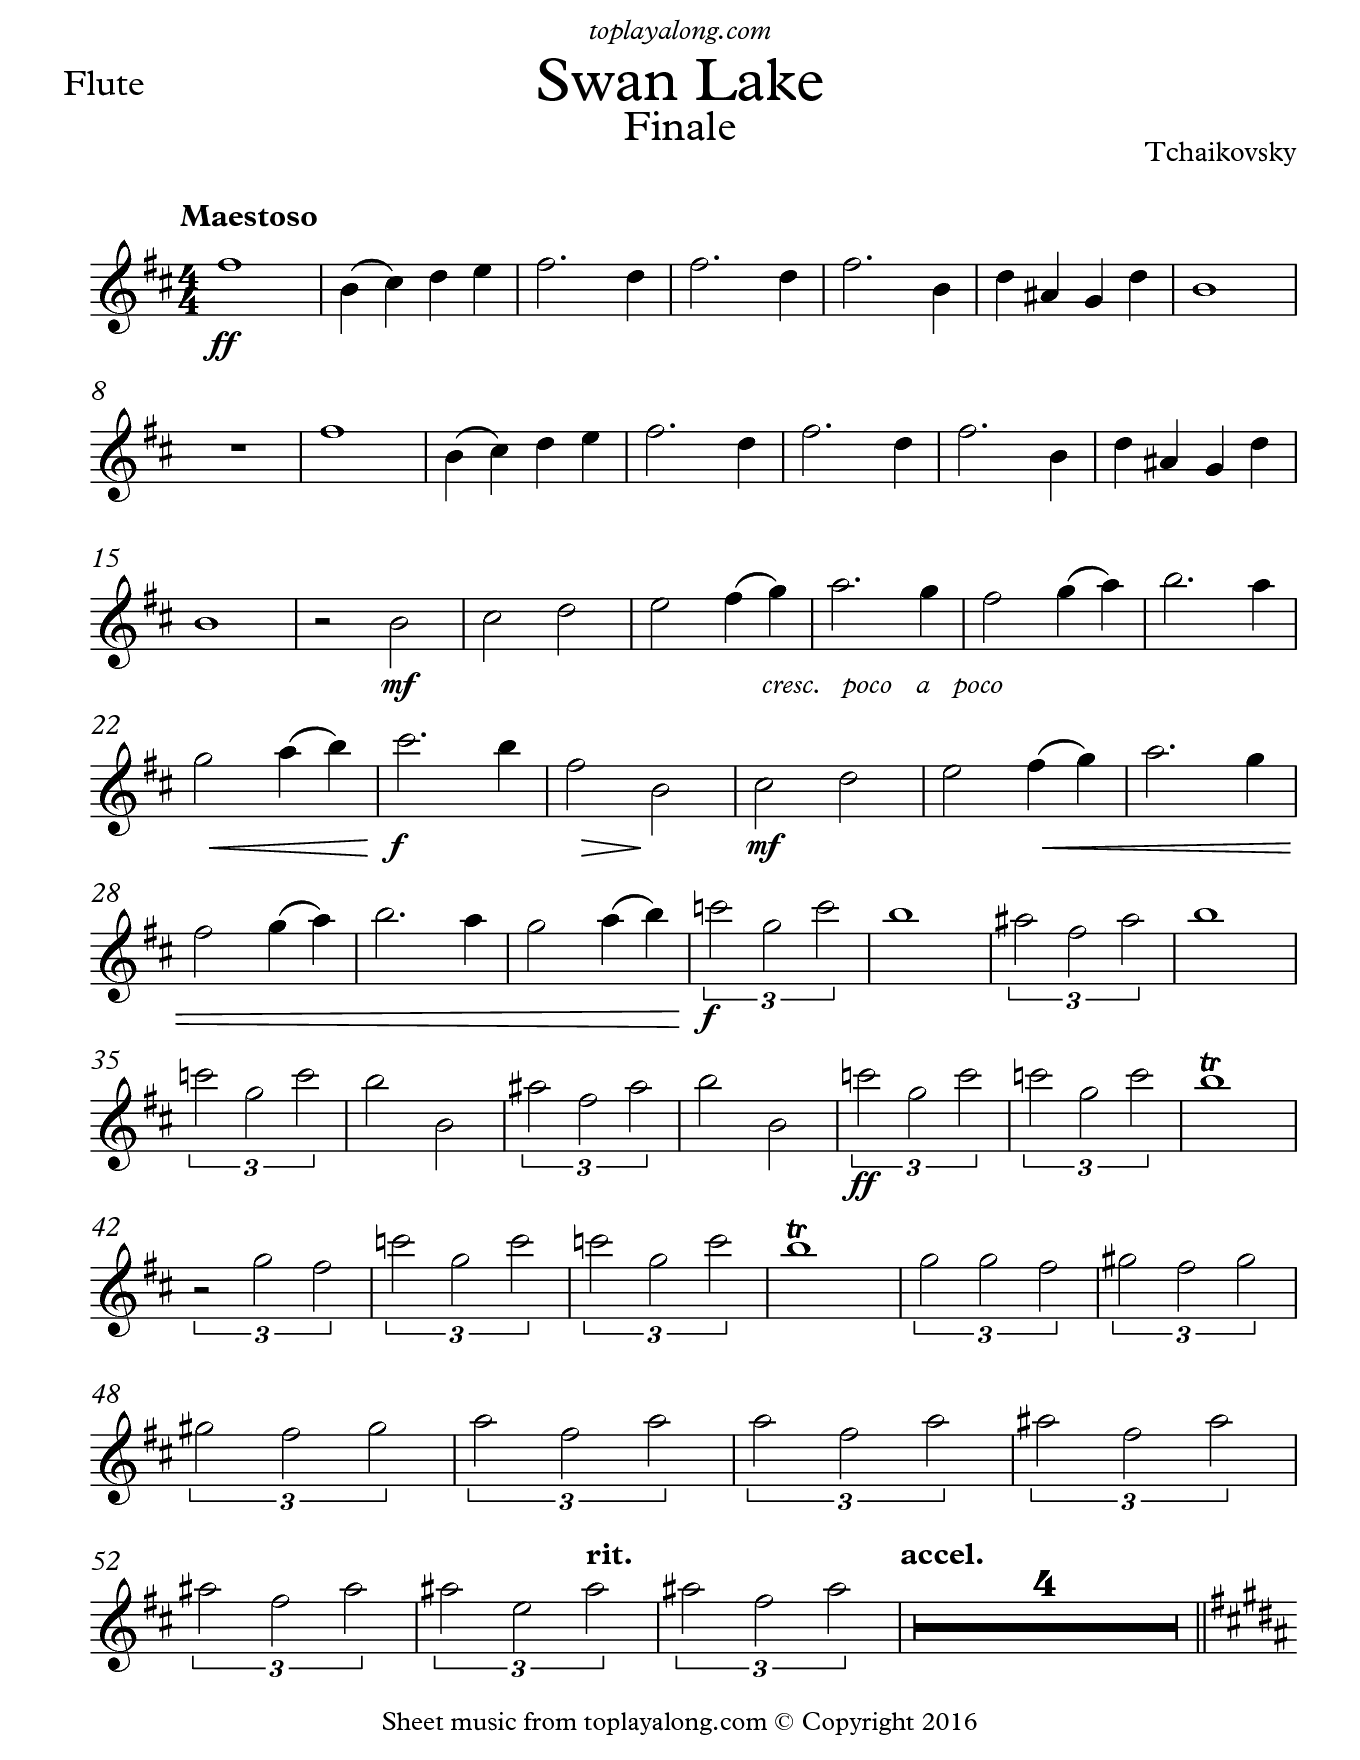 Free flute sheet music for Swan Lake Finale by Tchaikovsky